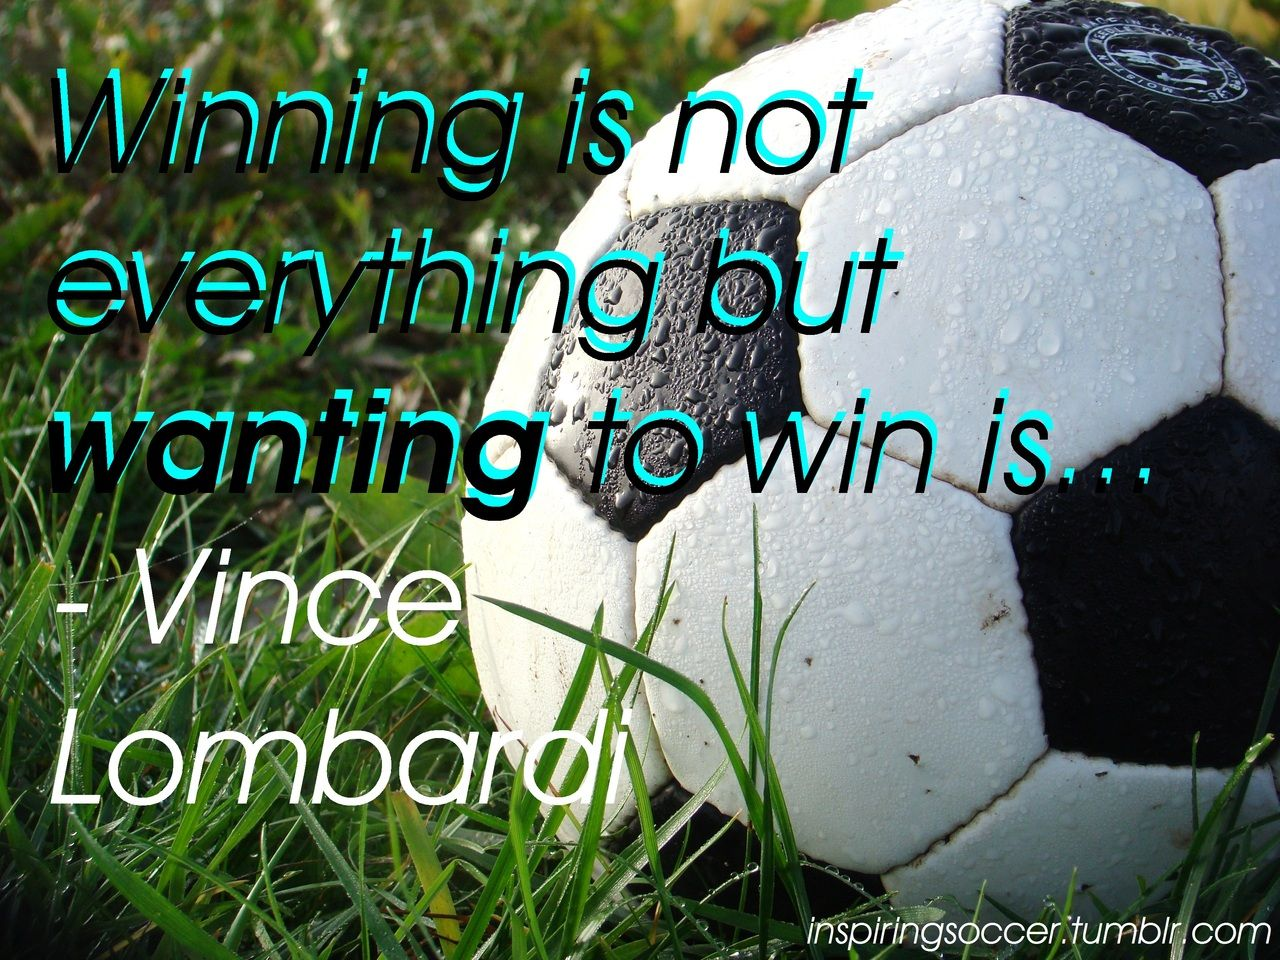 inspirational-soccer-quotes-8 - Folks Daily